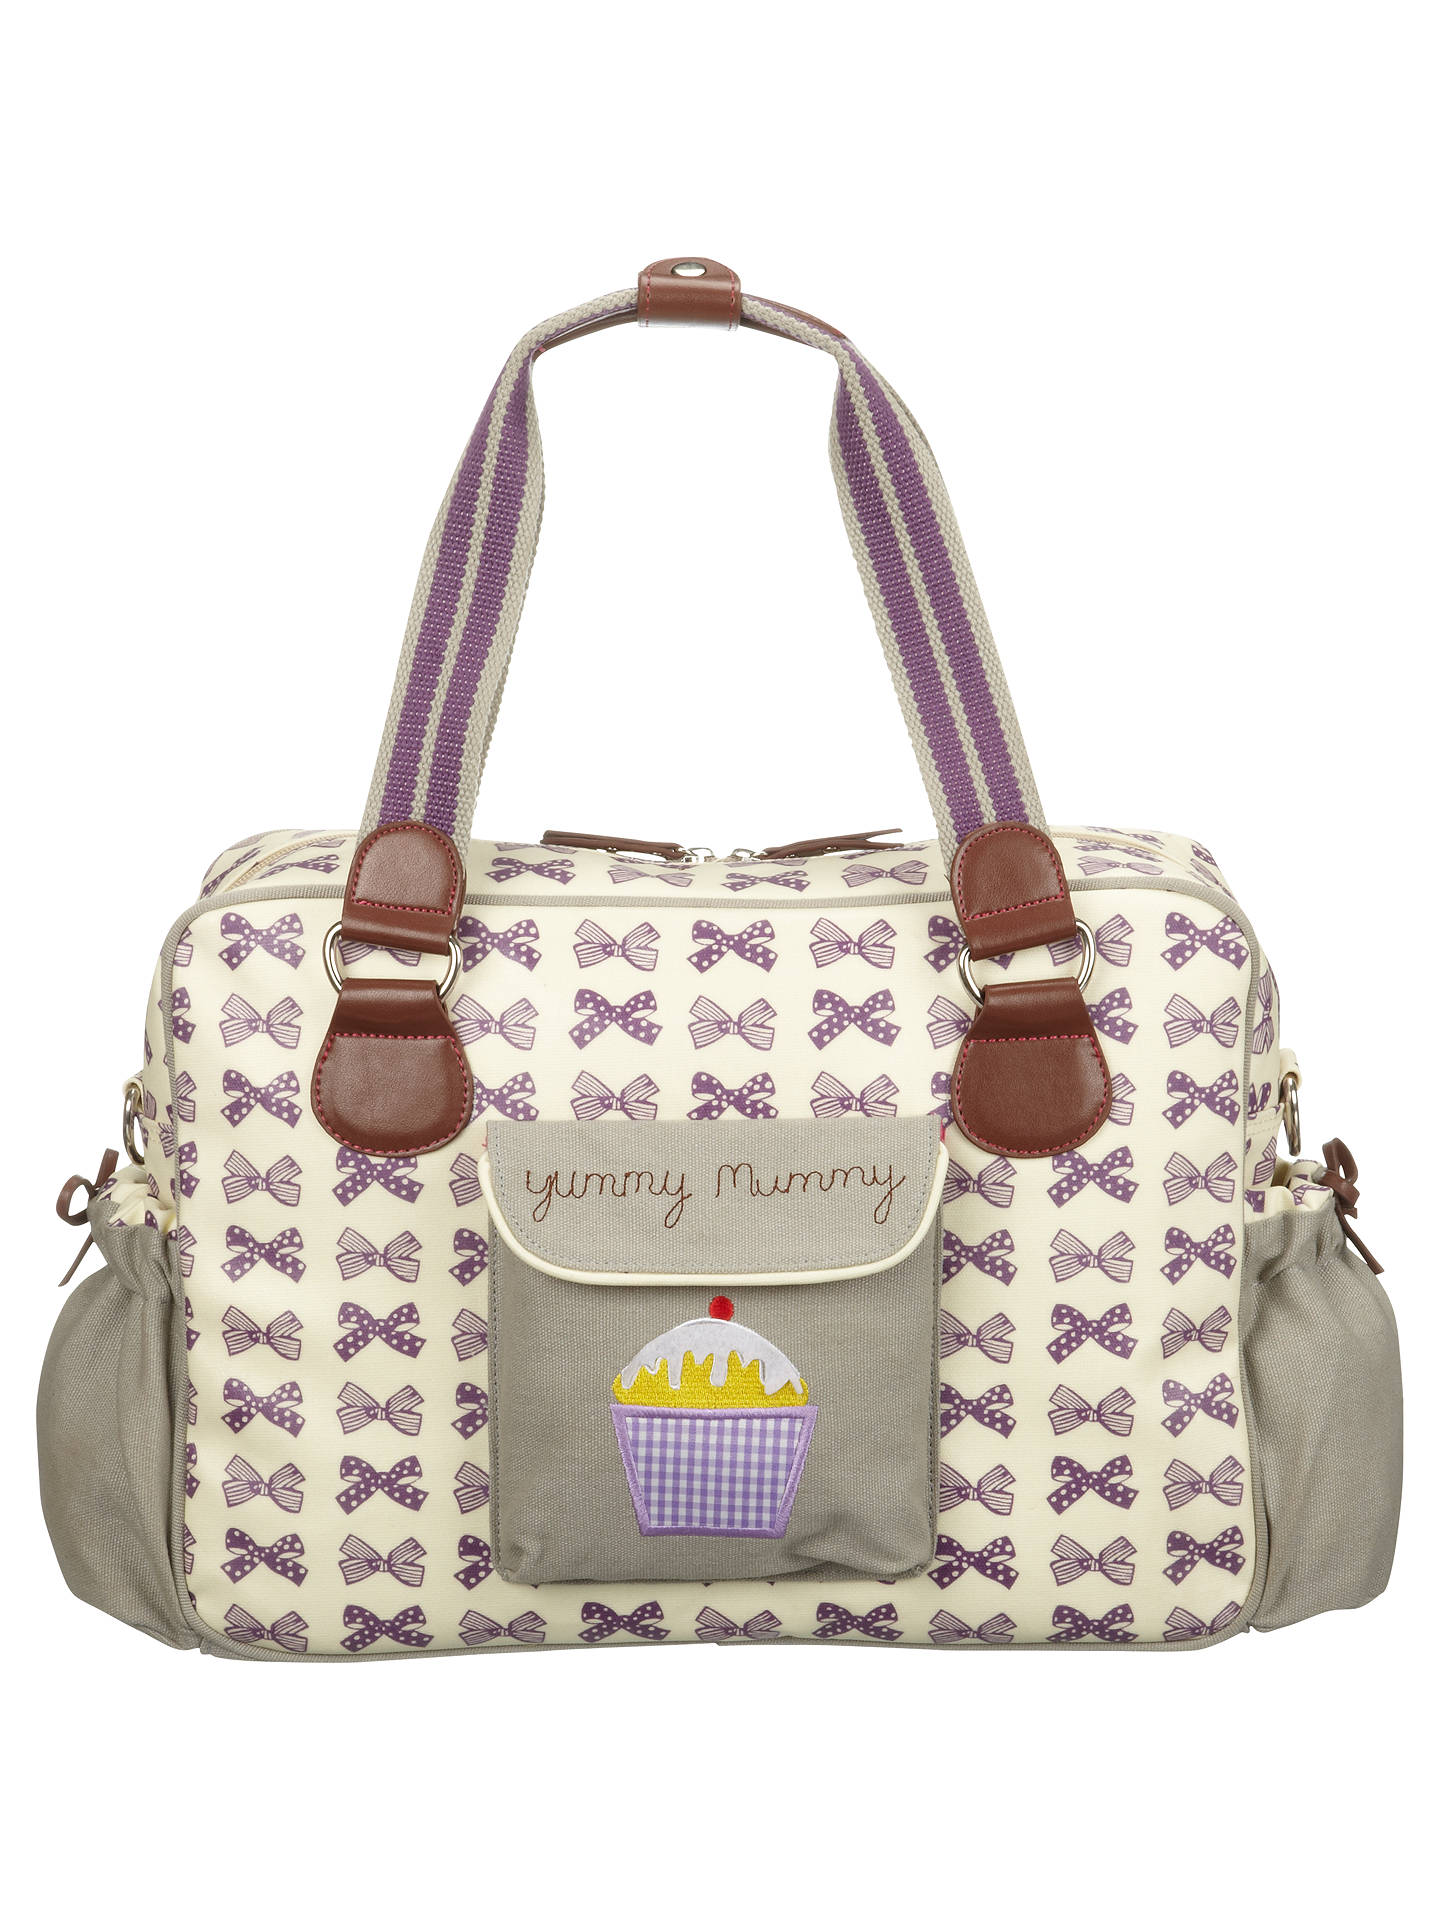 7fbe5a5ff9 Buy Pink Lining Yummy Mummy Bows Changing Bag, Grape Online at  johnlewis.com ...